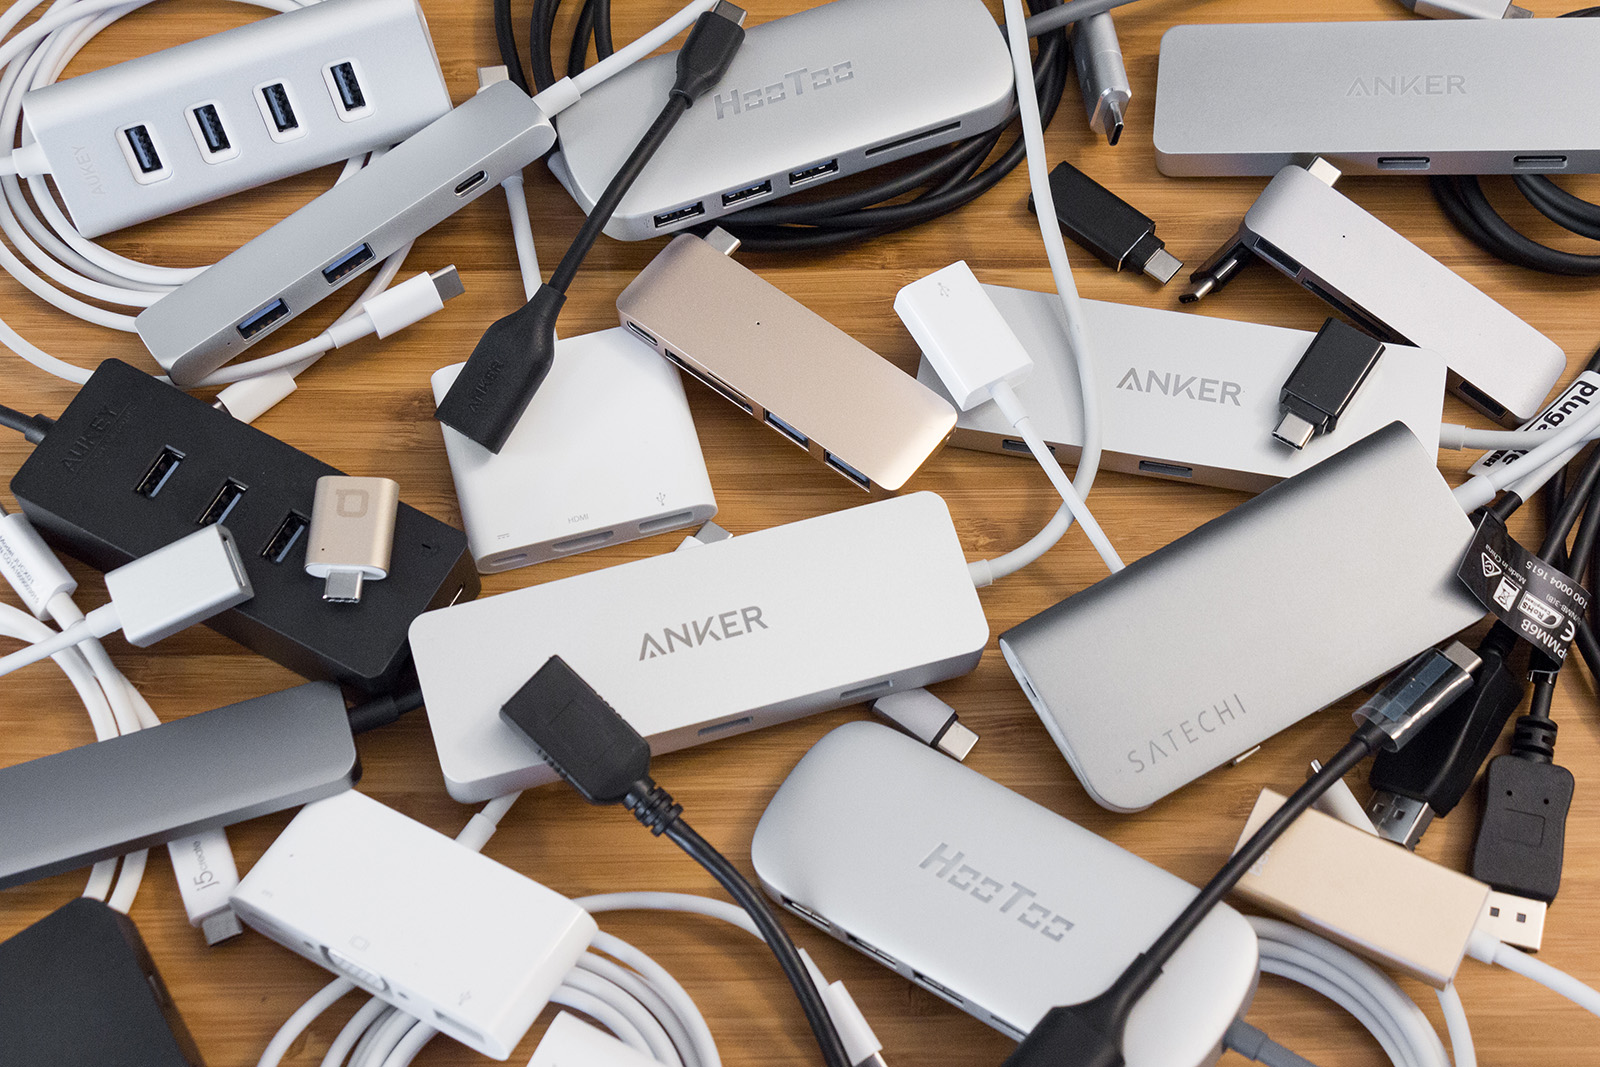 The best USB-C adapters, cables and hubs